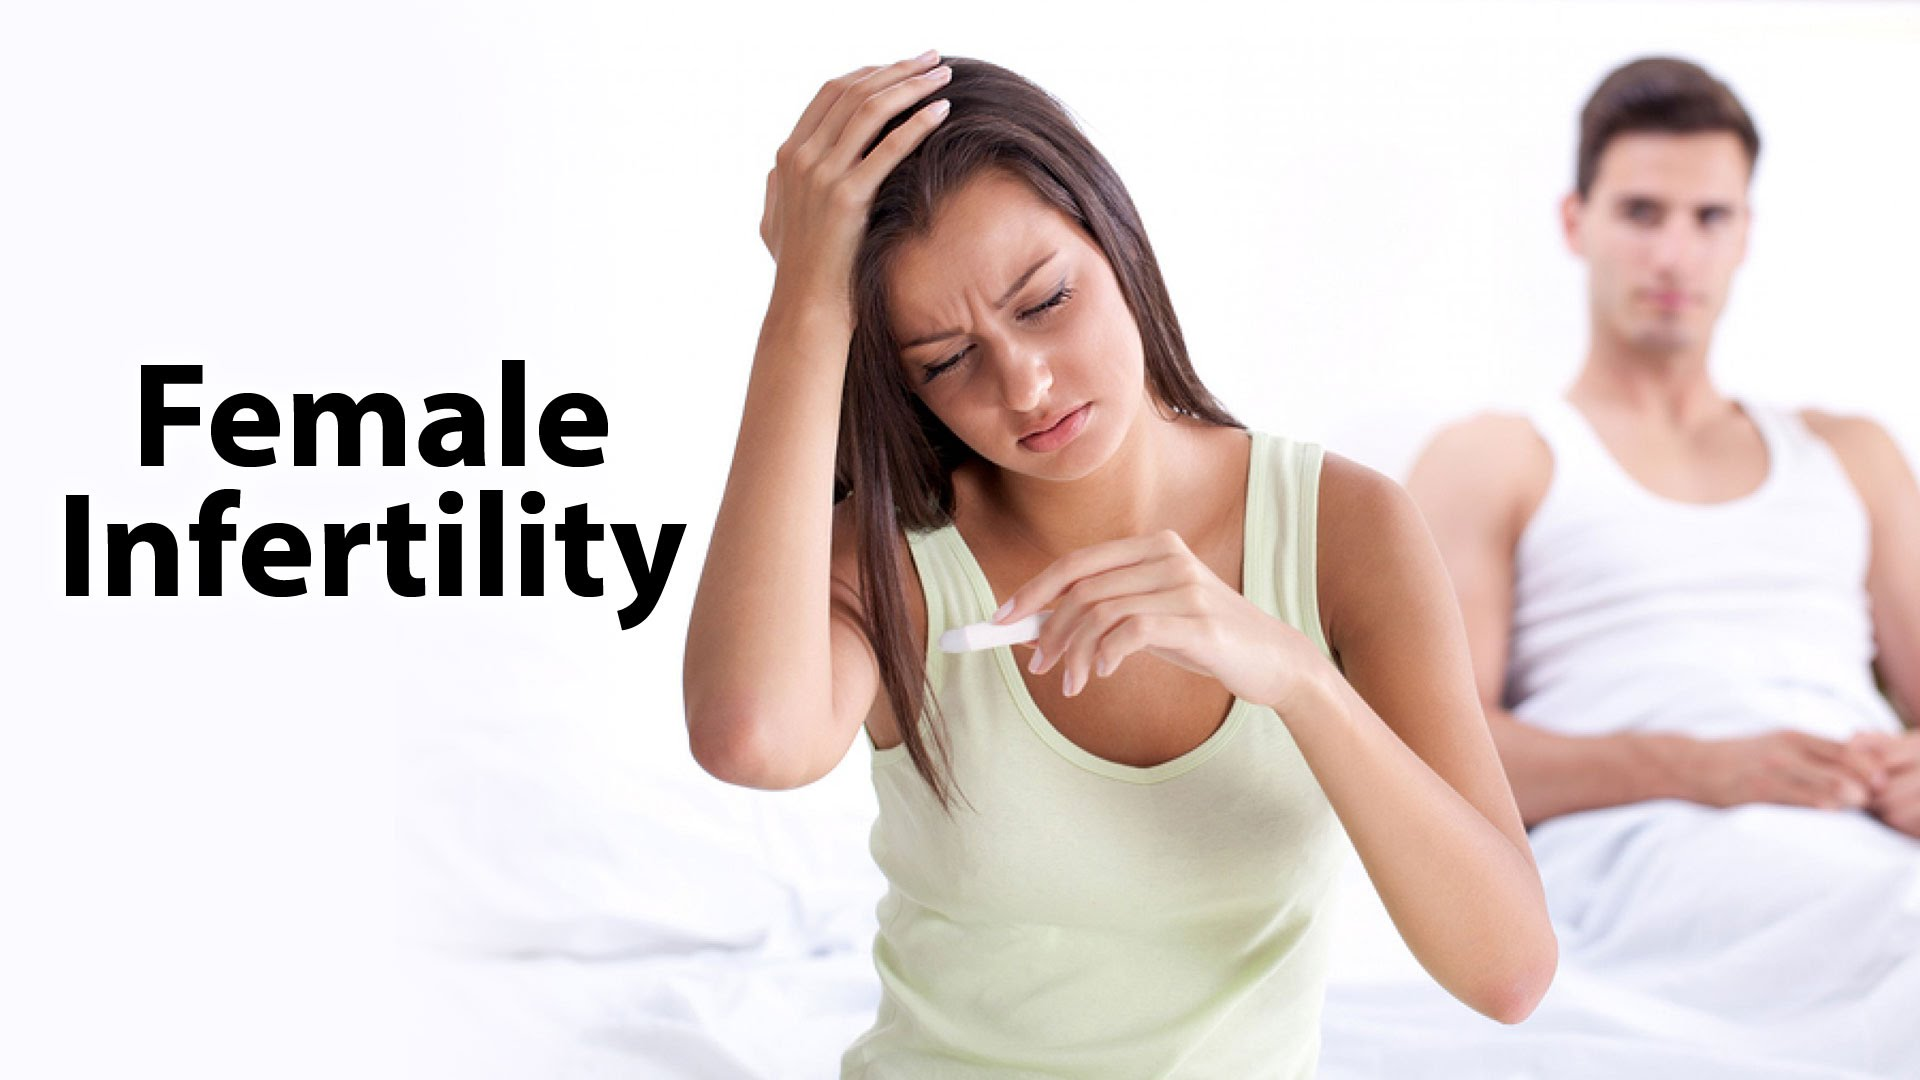 Most common causes of female infertility